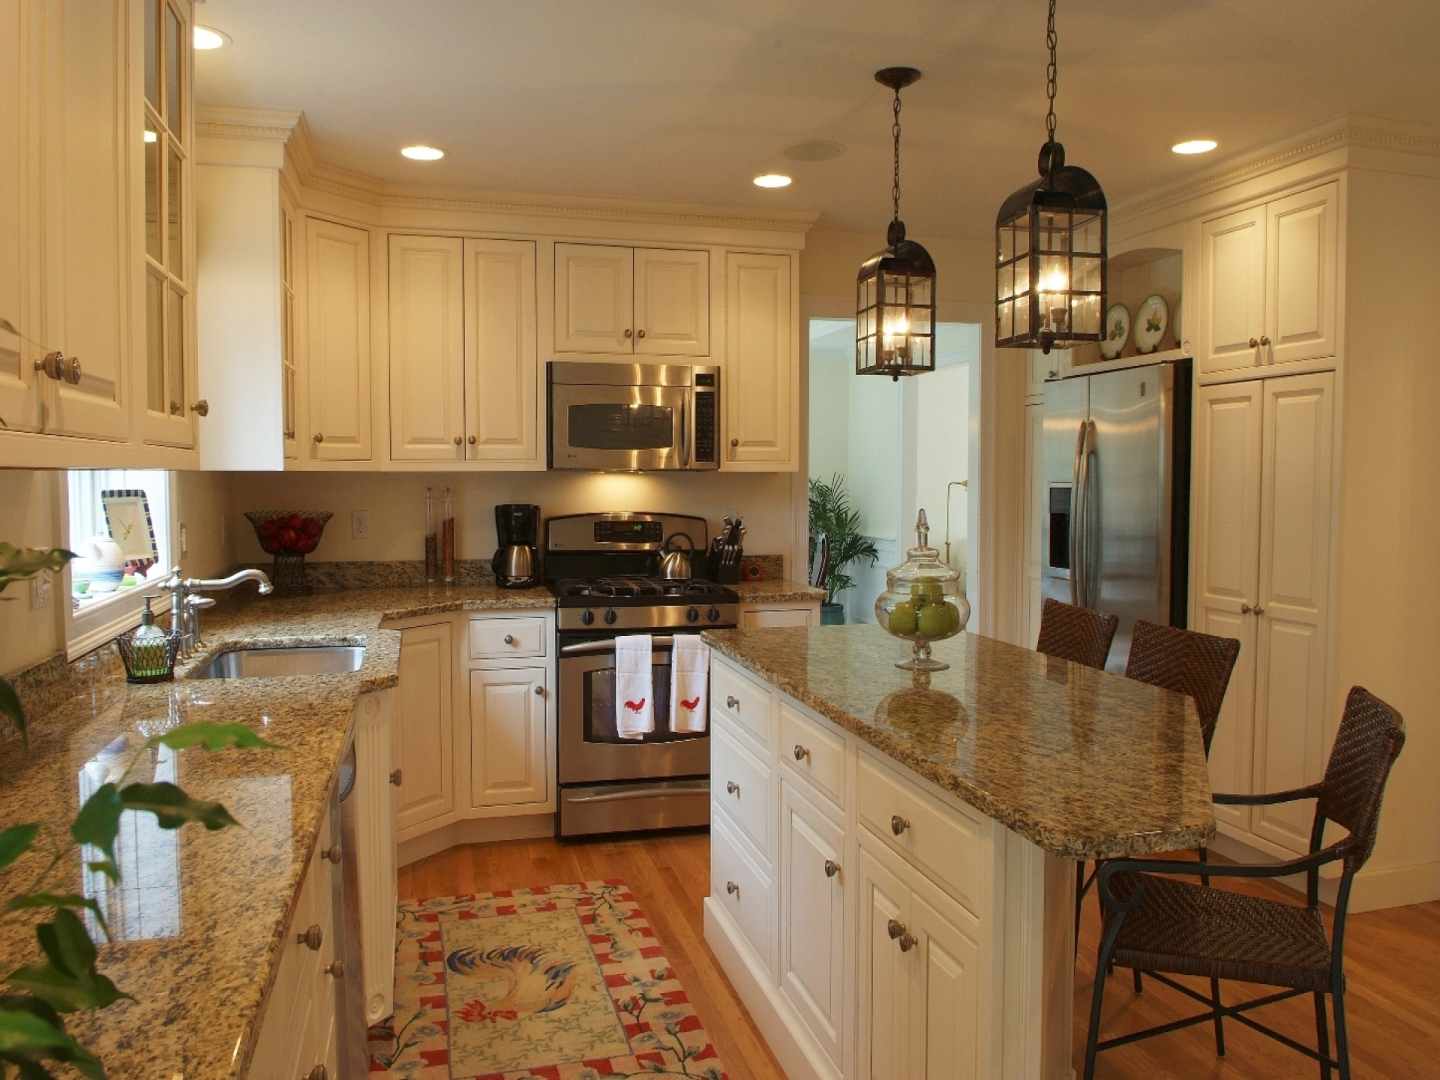 granite-countertops-kitchen-cabinets.jpg